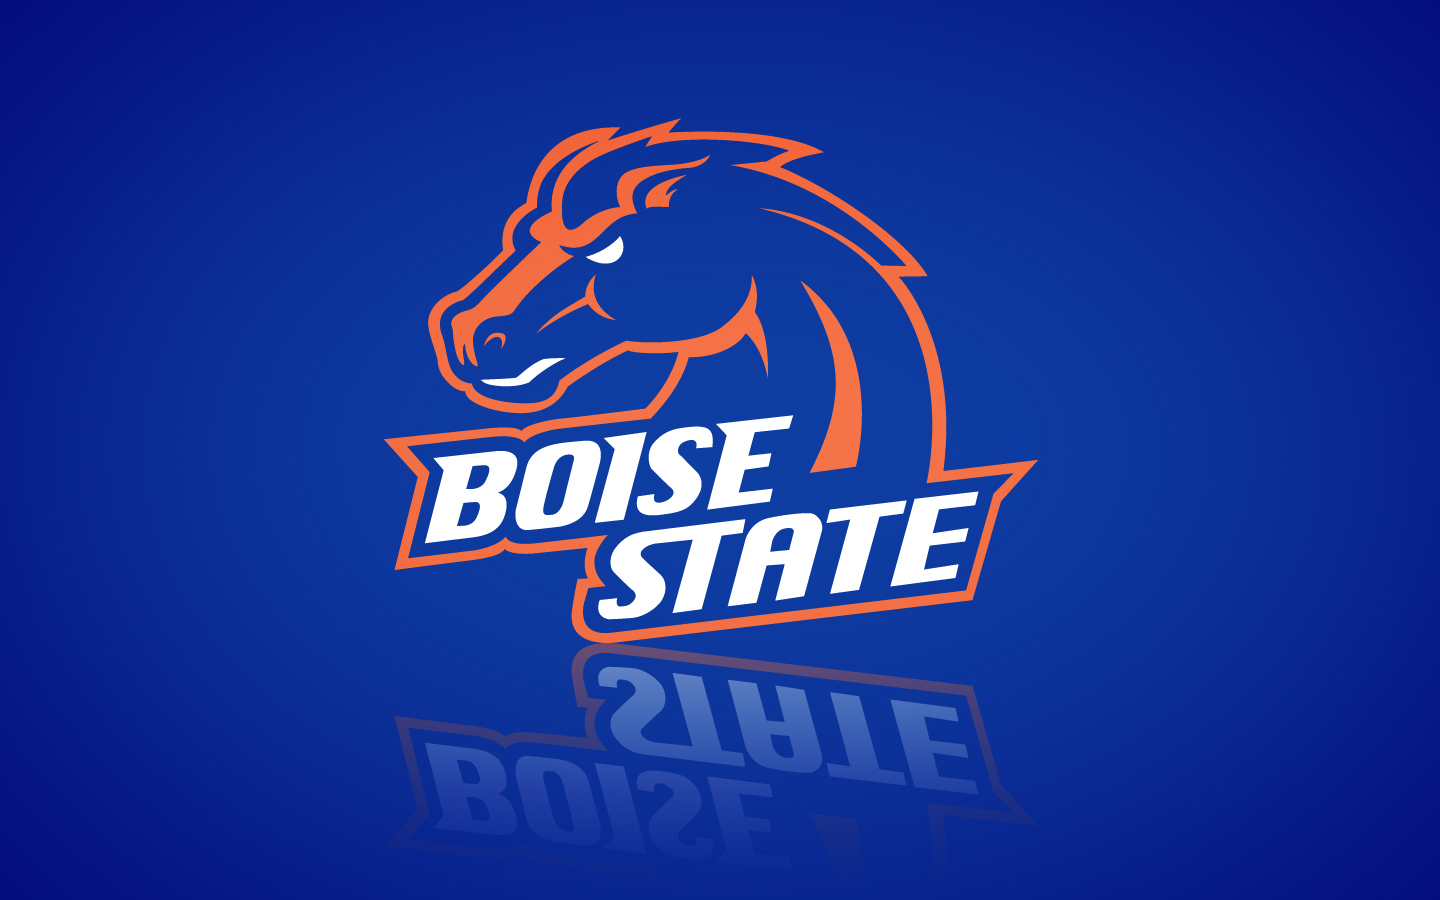 Boise State Broncos Football Wallpapers: Free Penn State Football Wallpaper